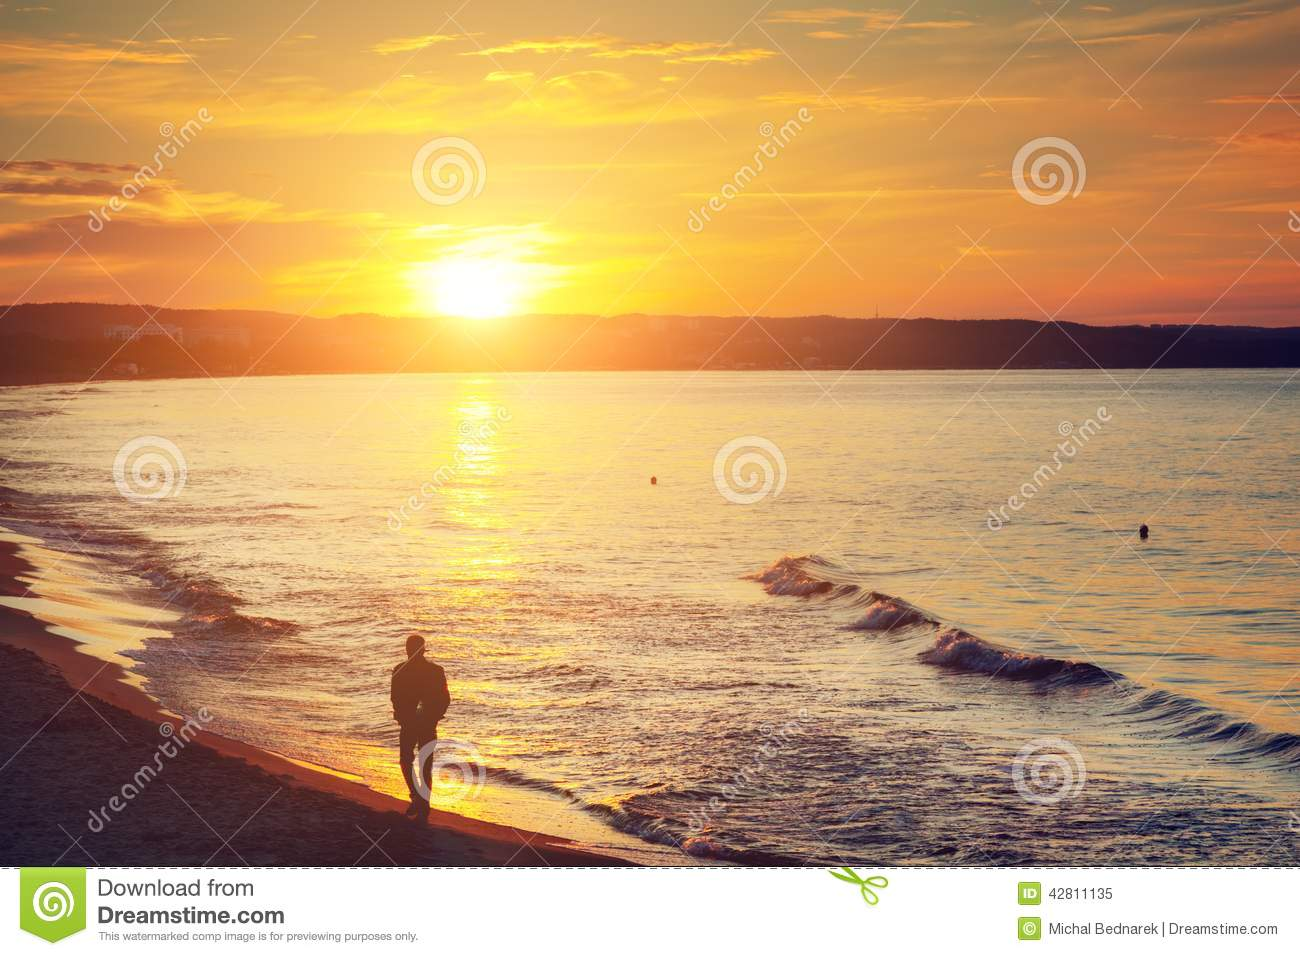 Alone Quotes Wallpaper Free Download Man Walking Alone On The Beach At Sunset Calm Sea Stock